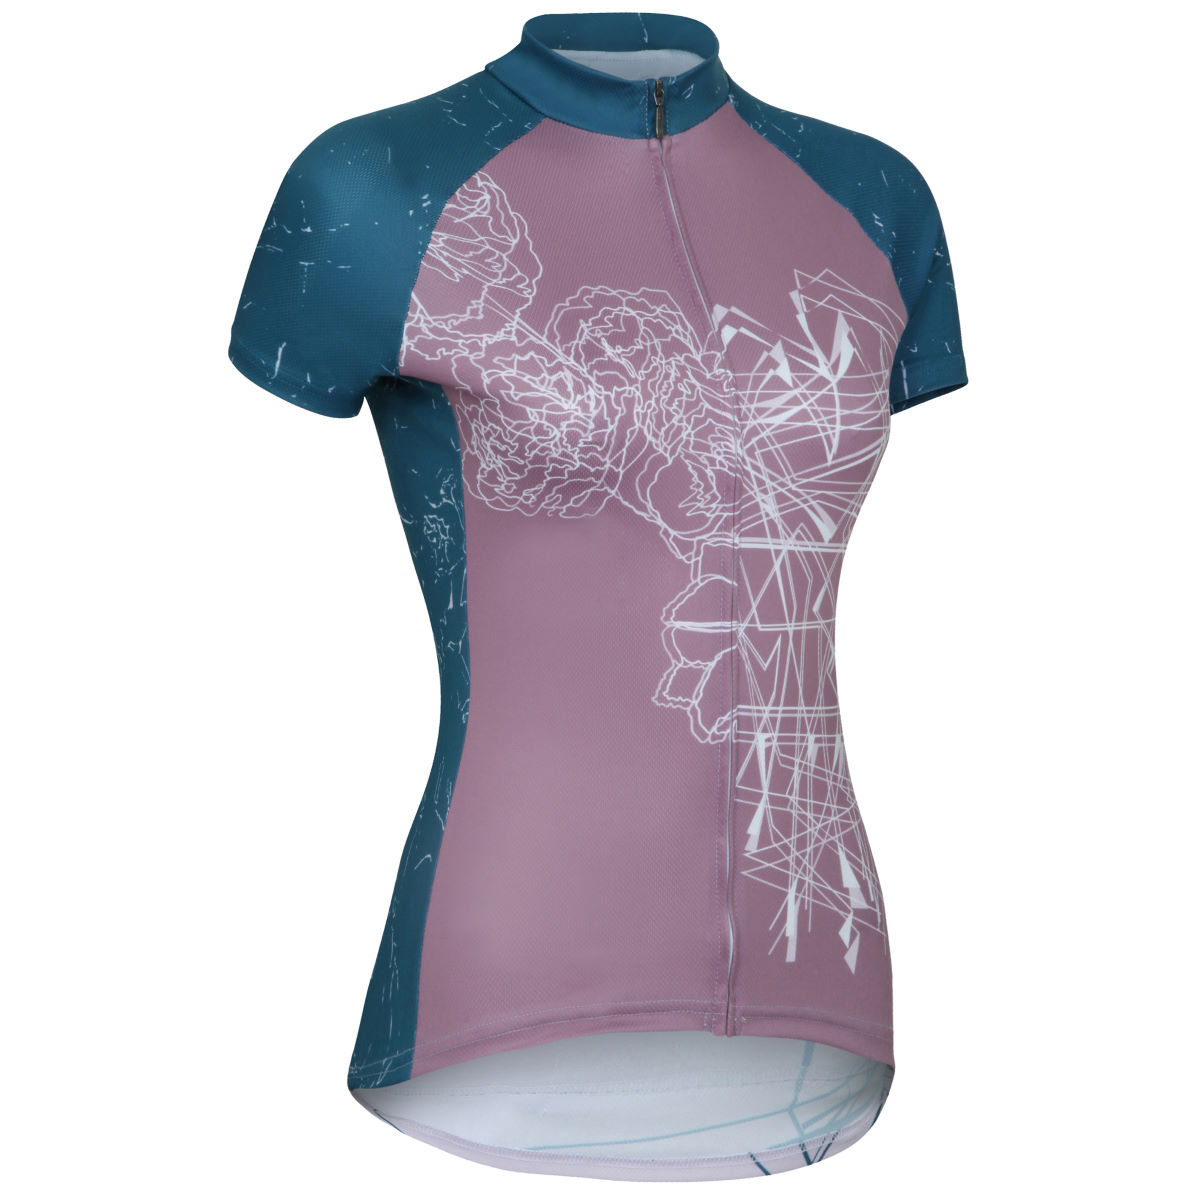 Maillot Femme Primal Bedlam (coupe sportive) - XL Purple/Blue